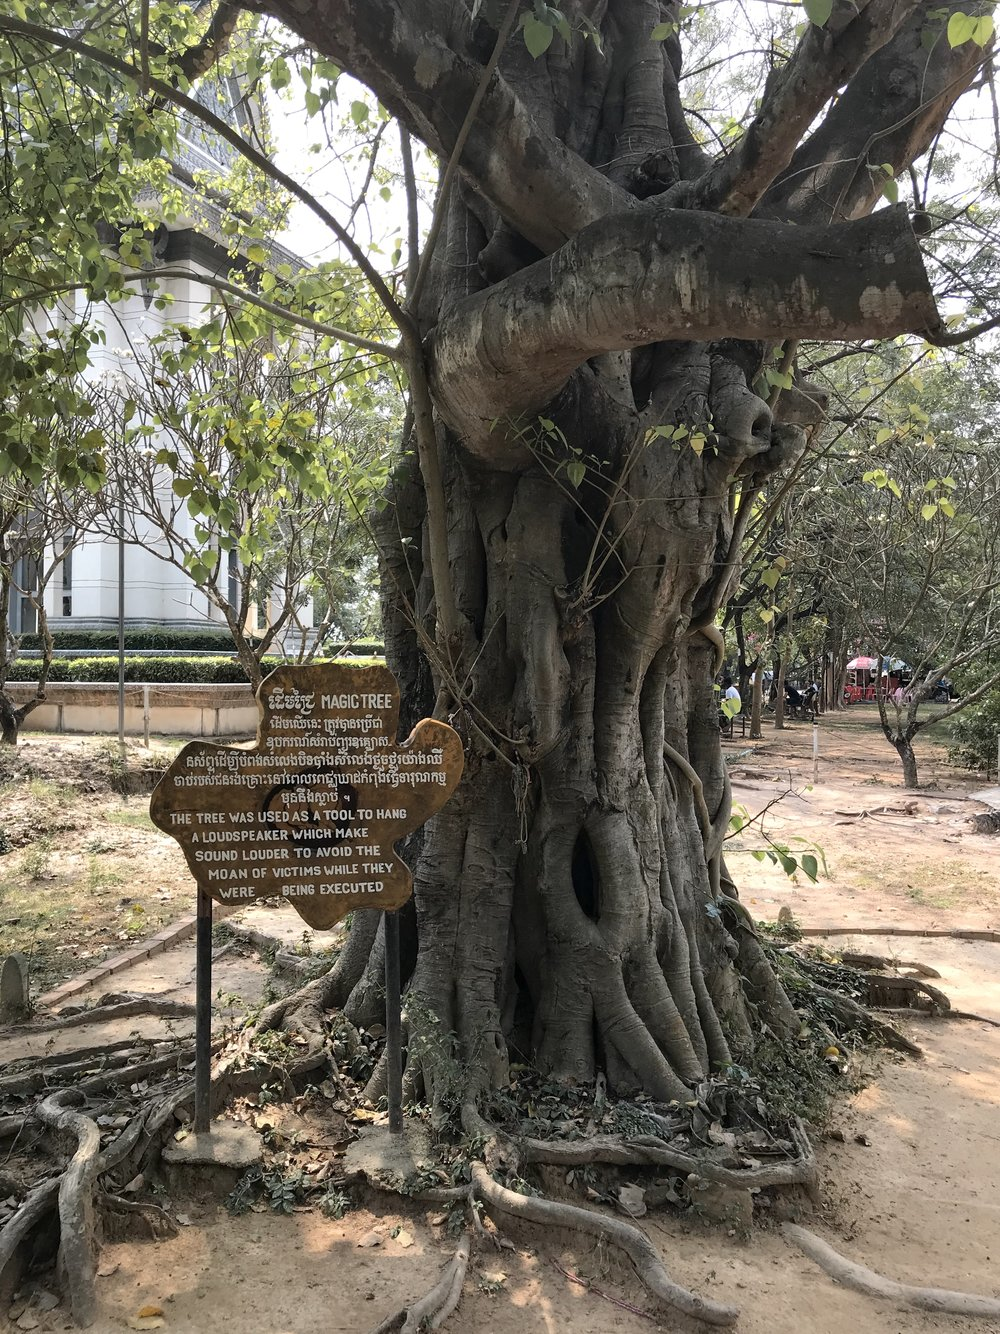 The Magic Tree that held a hanging speaker used to drown out screams of people being tortured and killed.